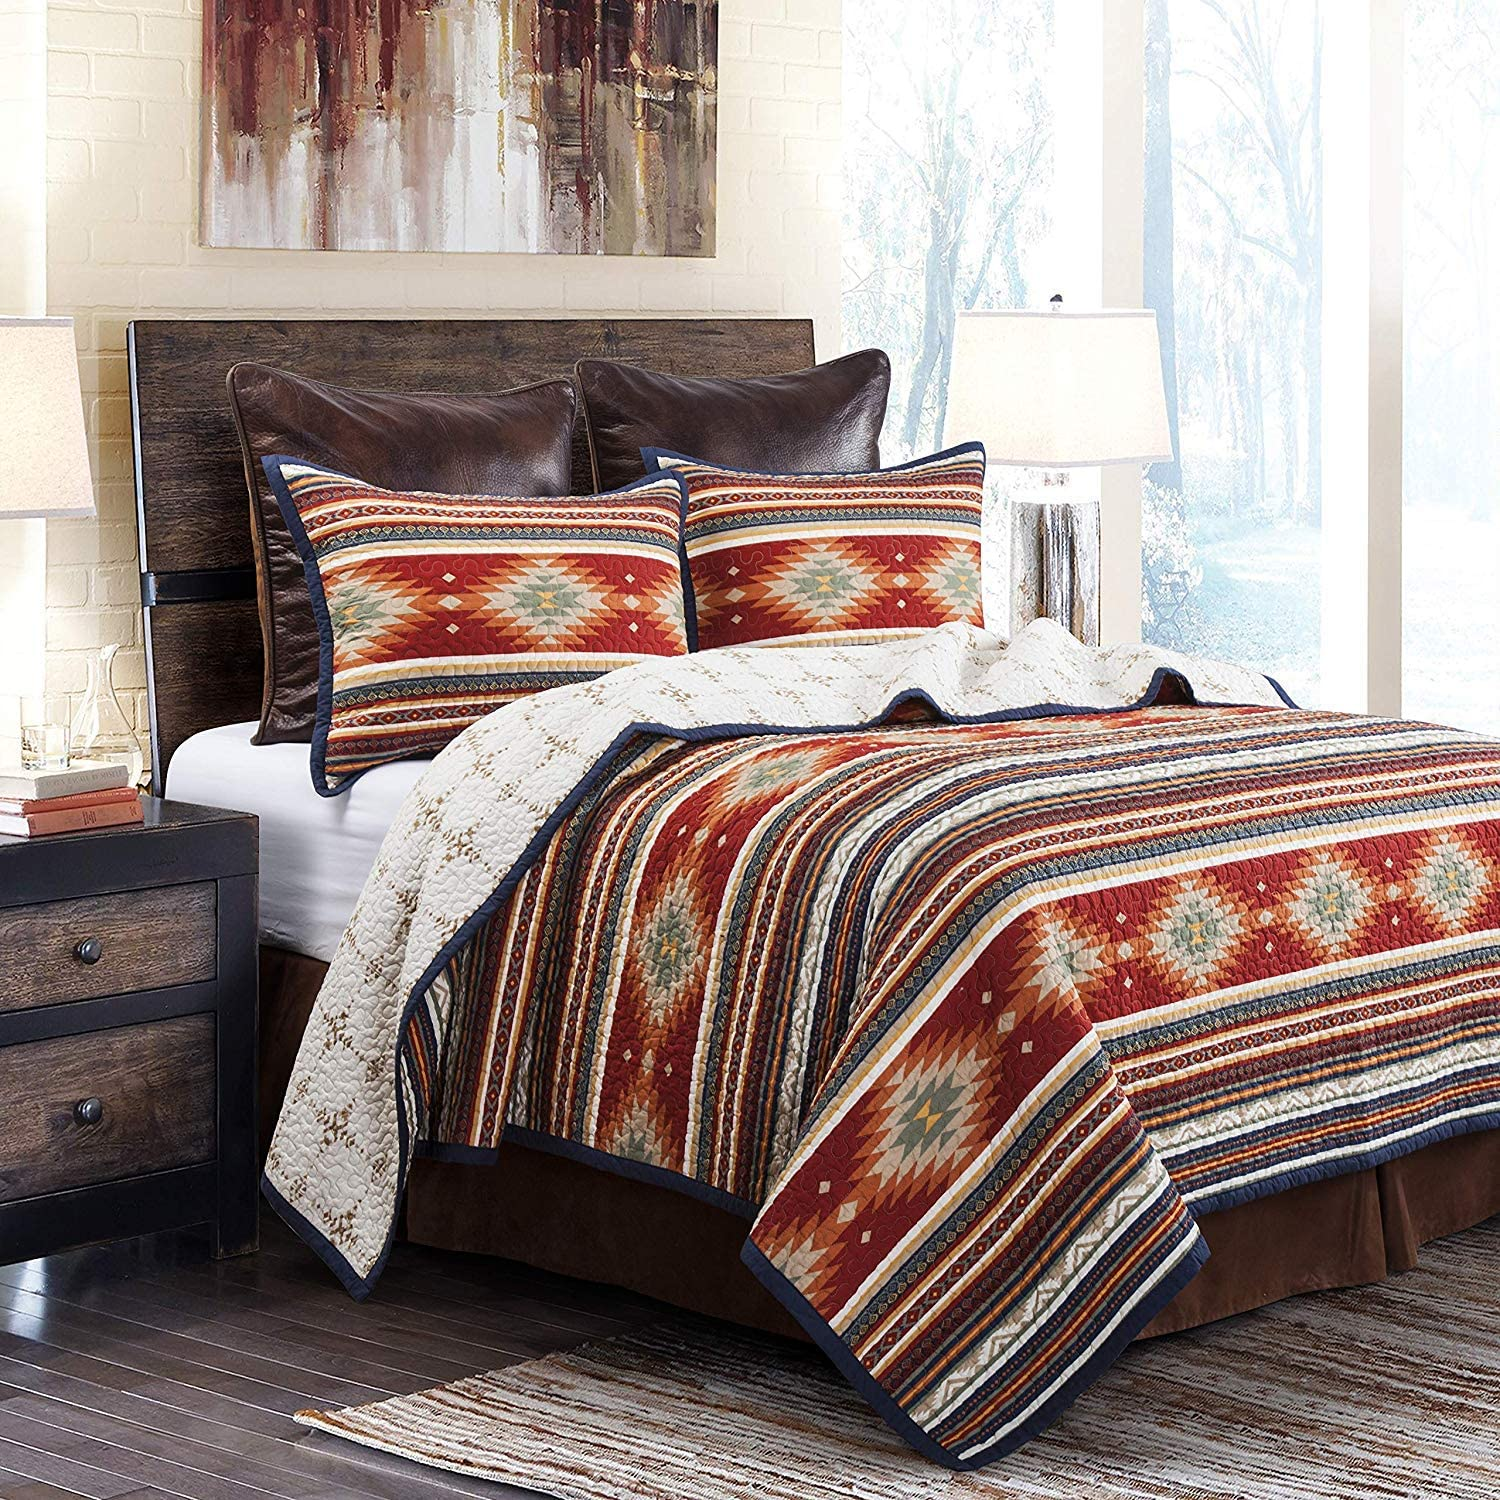 HiEnd Accents 3 PC Del Sol Reversible Japan Maker New Full Boston Mall Set Quilt Queen